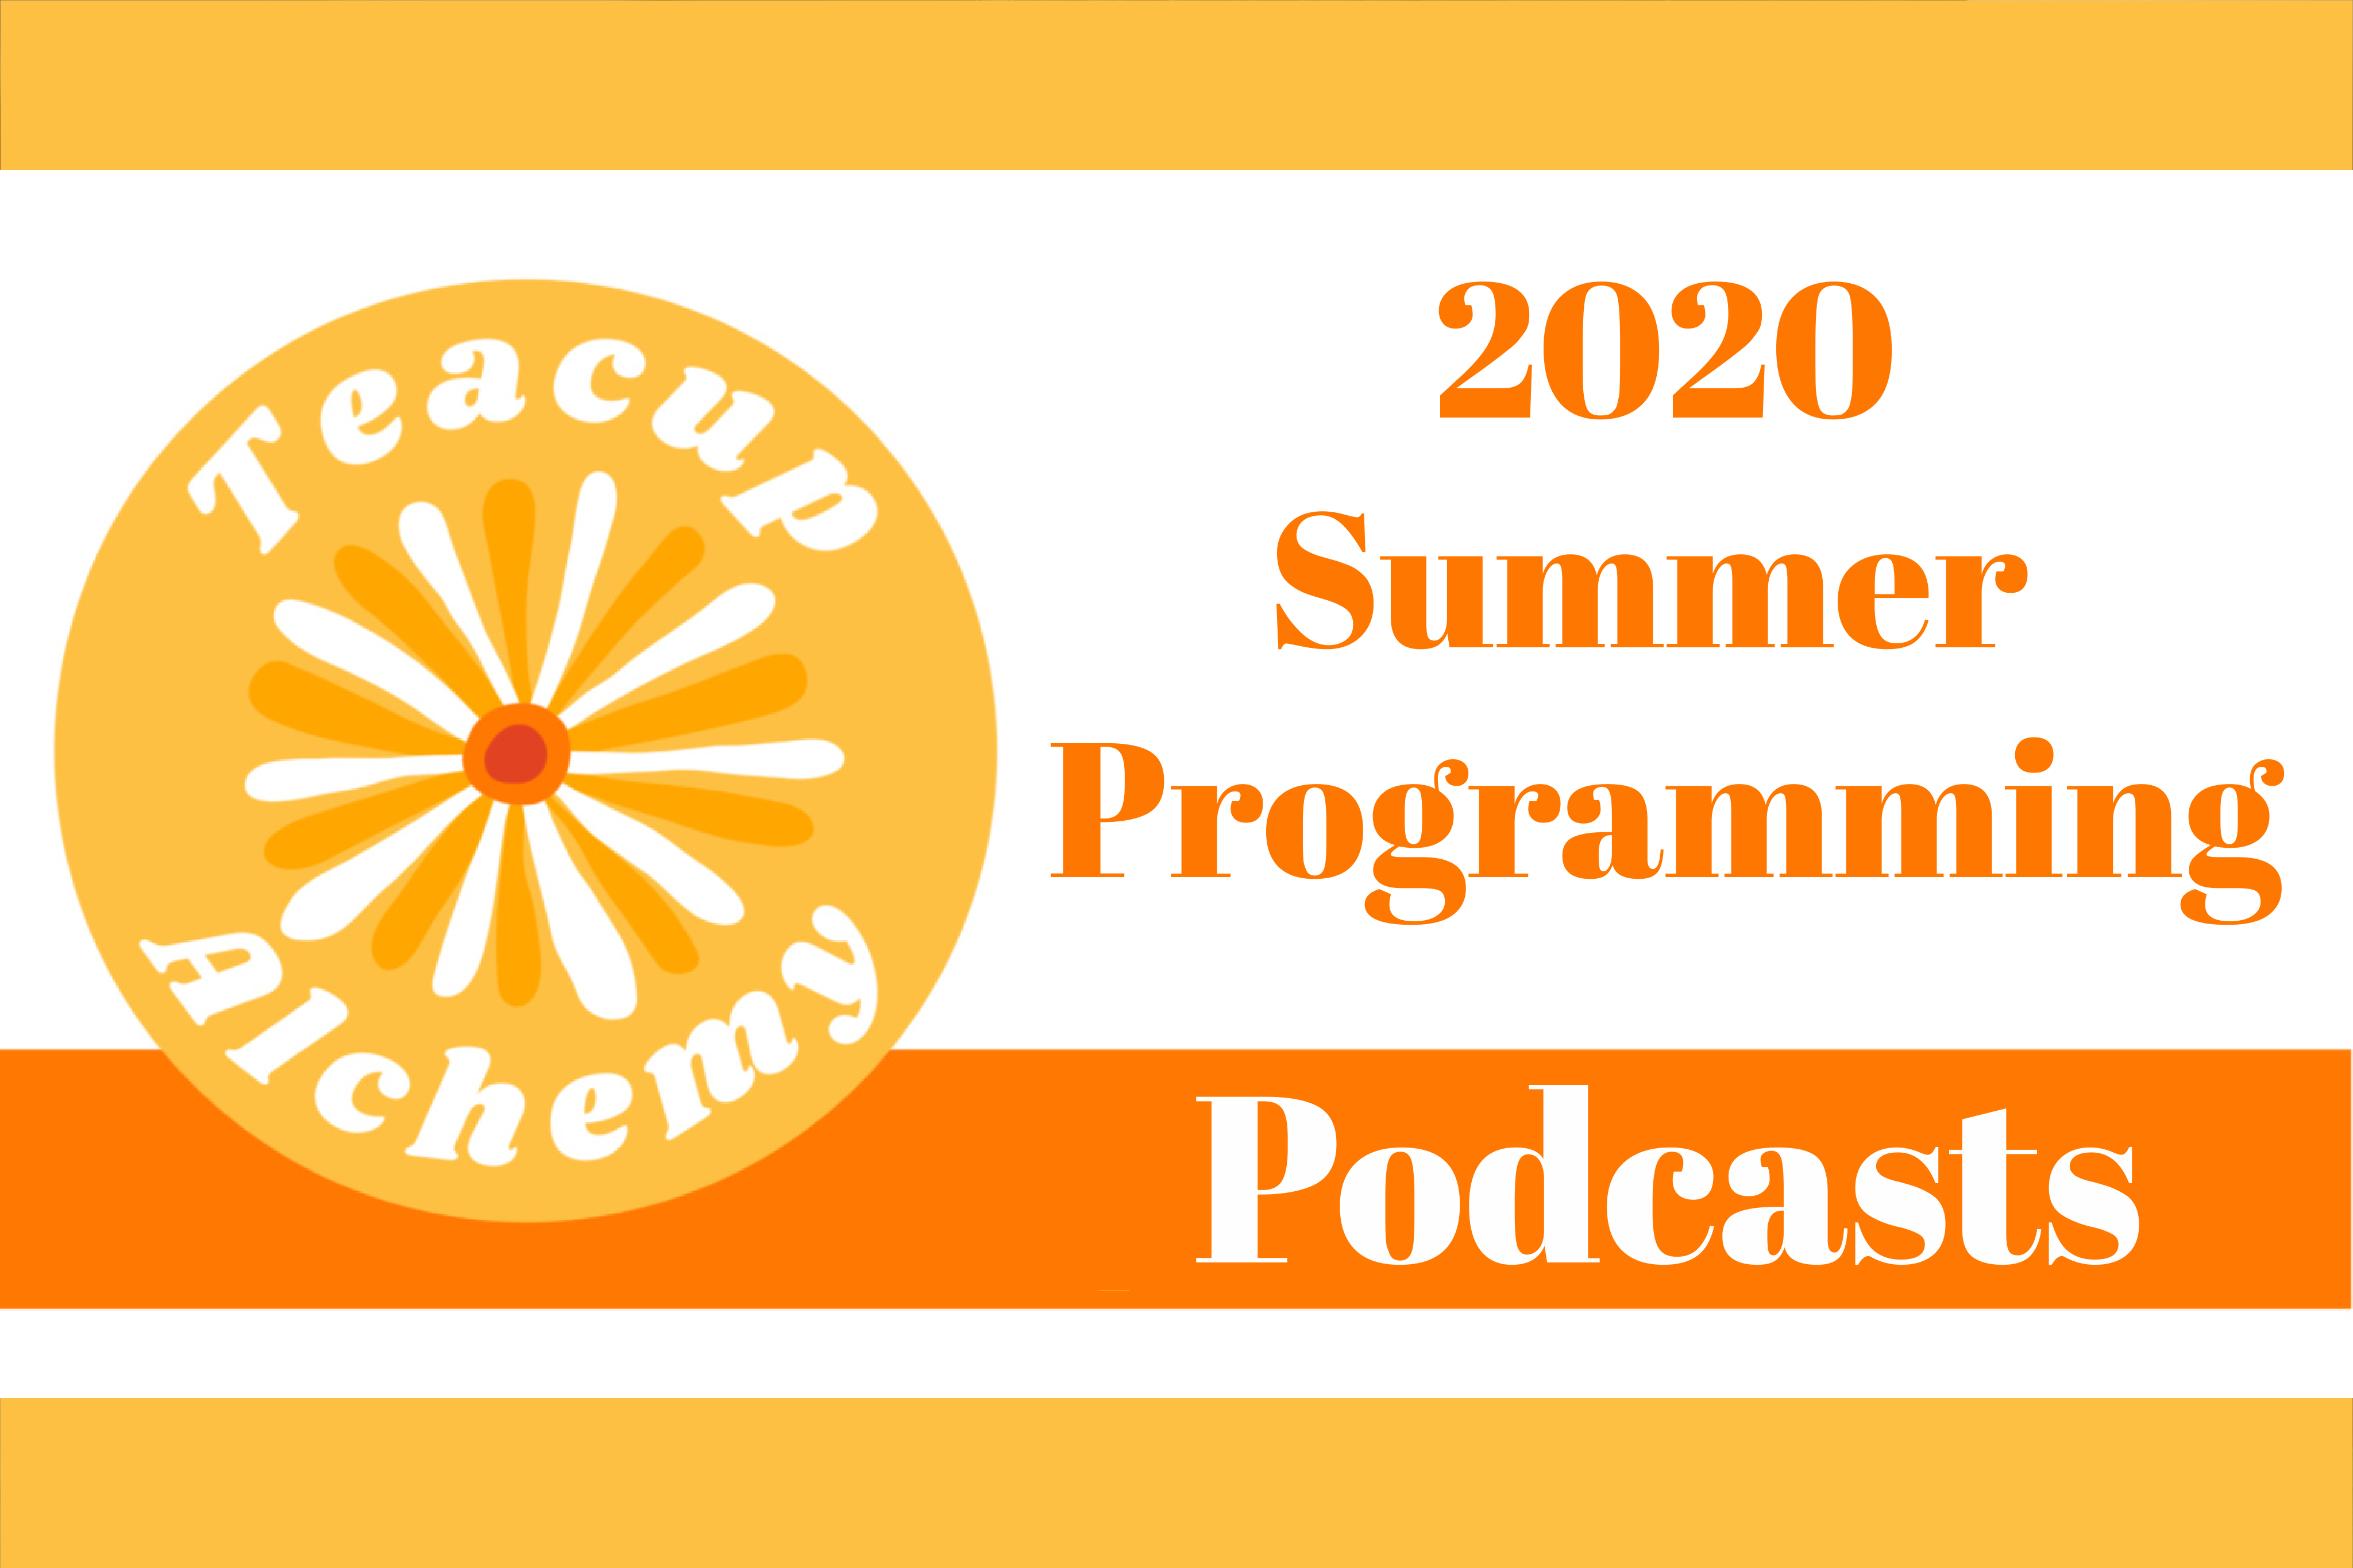 Upcoming Herbal Podcasts for Summer 2020